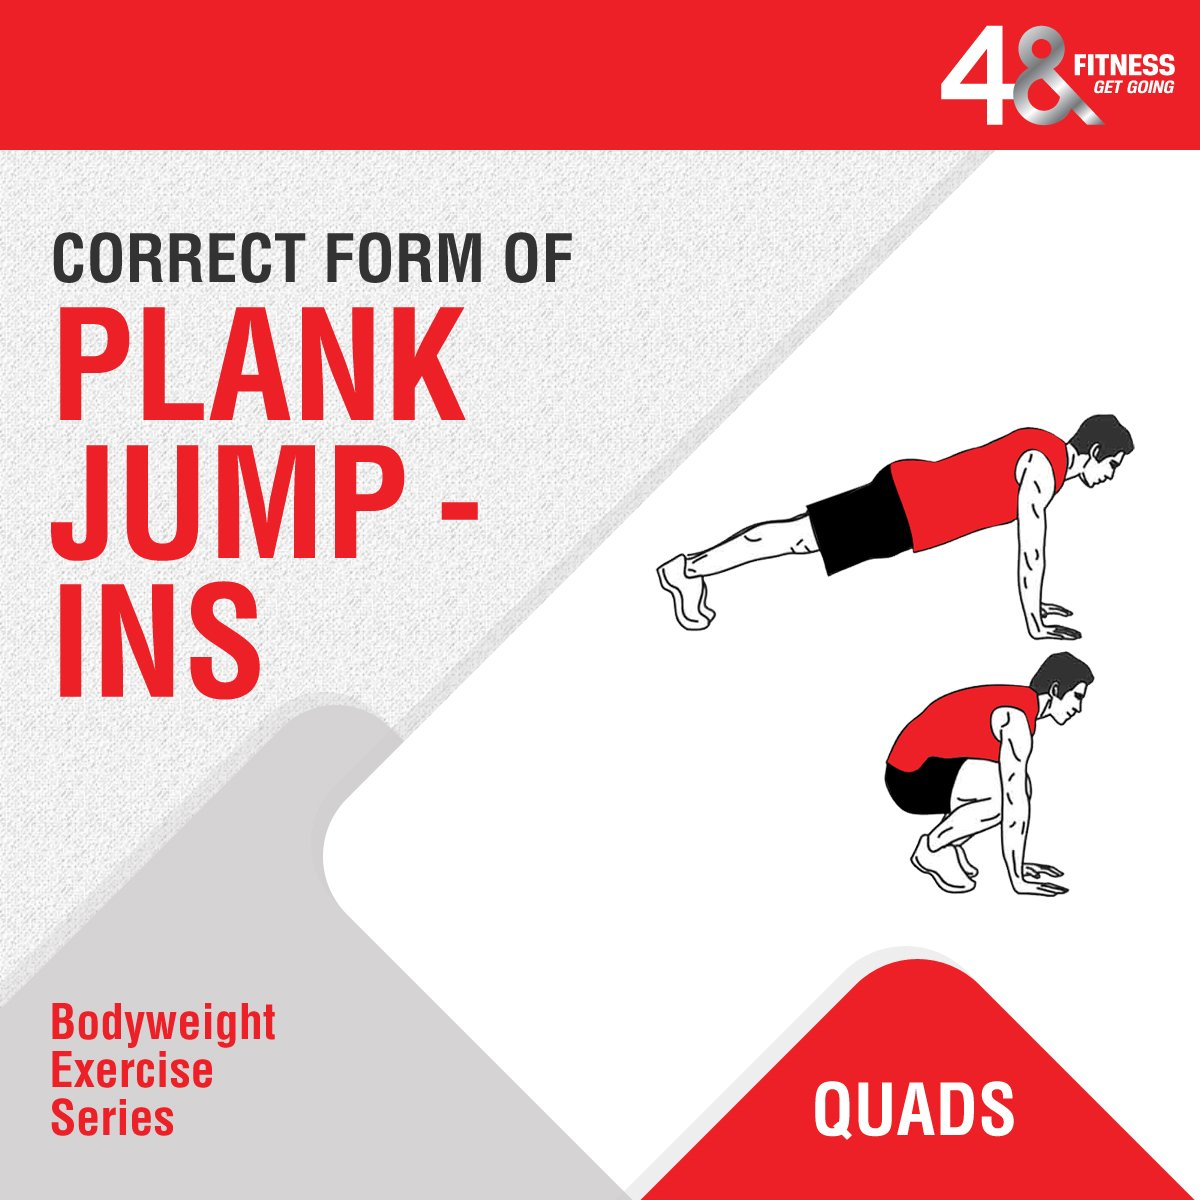 Target #abs, #quads, #hips with easy step-by-step expert instructions for plank jump-ins only at #48Fitness. What's more, you can now avail 13 different Group Classes absolutely complimentary with your club membership. Enroll today. . . . #fitnessfam #fitnessjunkie <br>http://pic.twitter.com/fTzhugWxMY